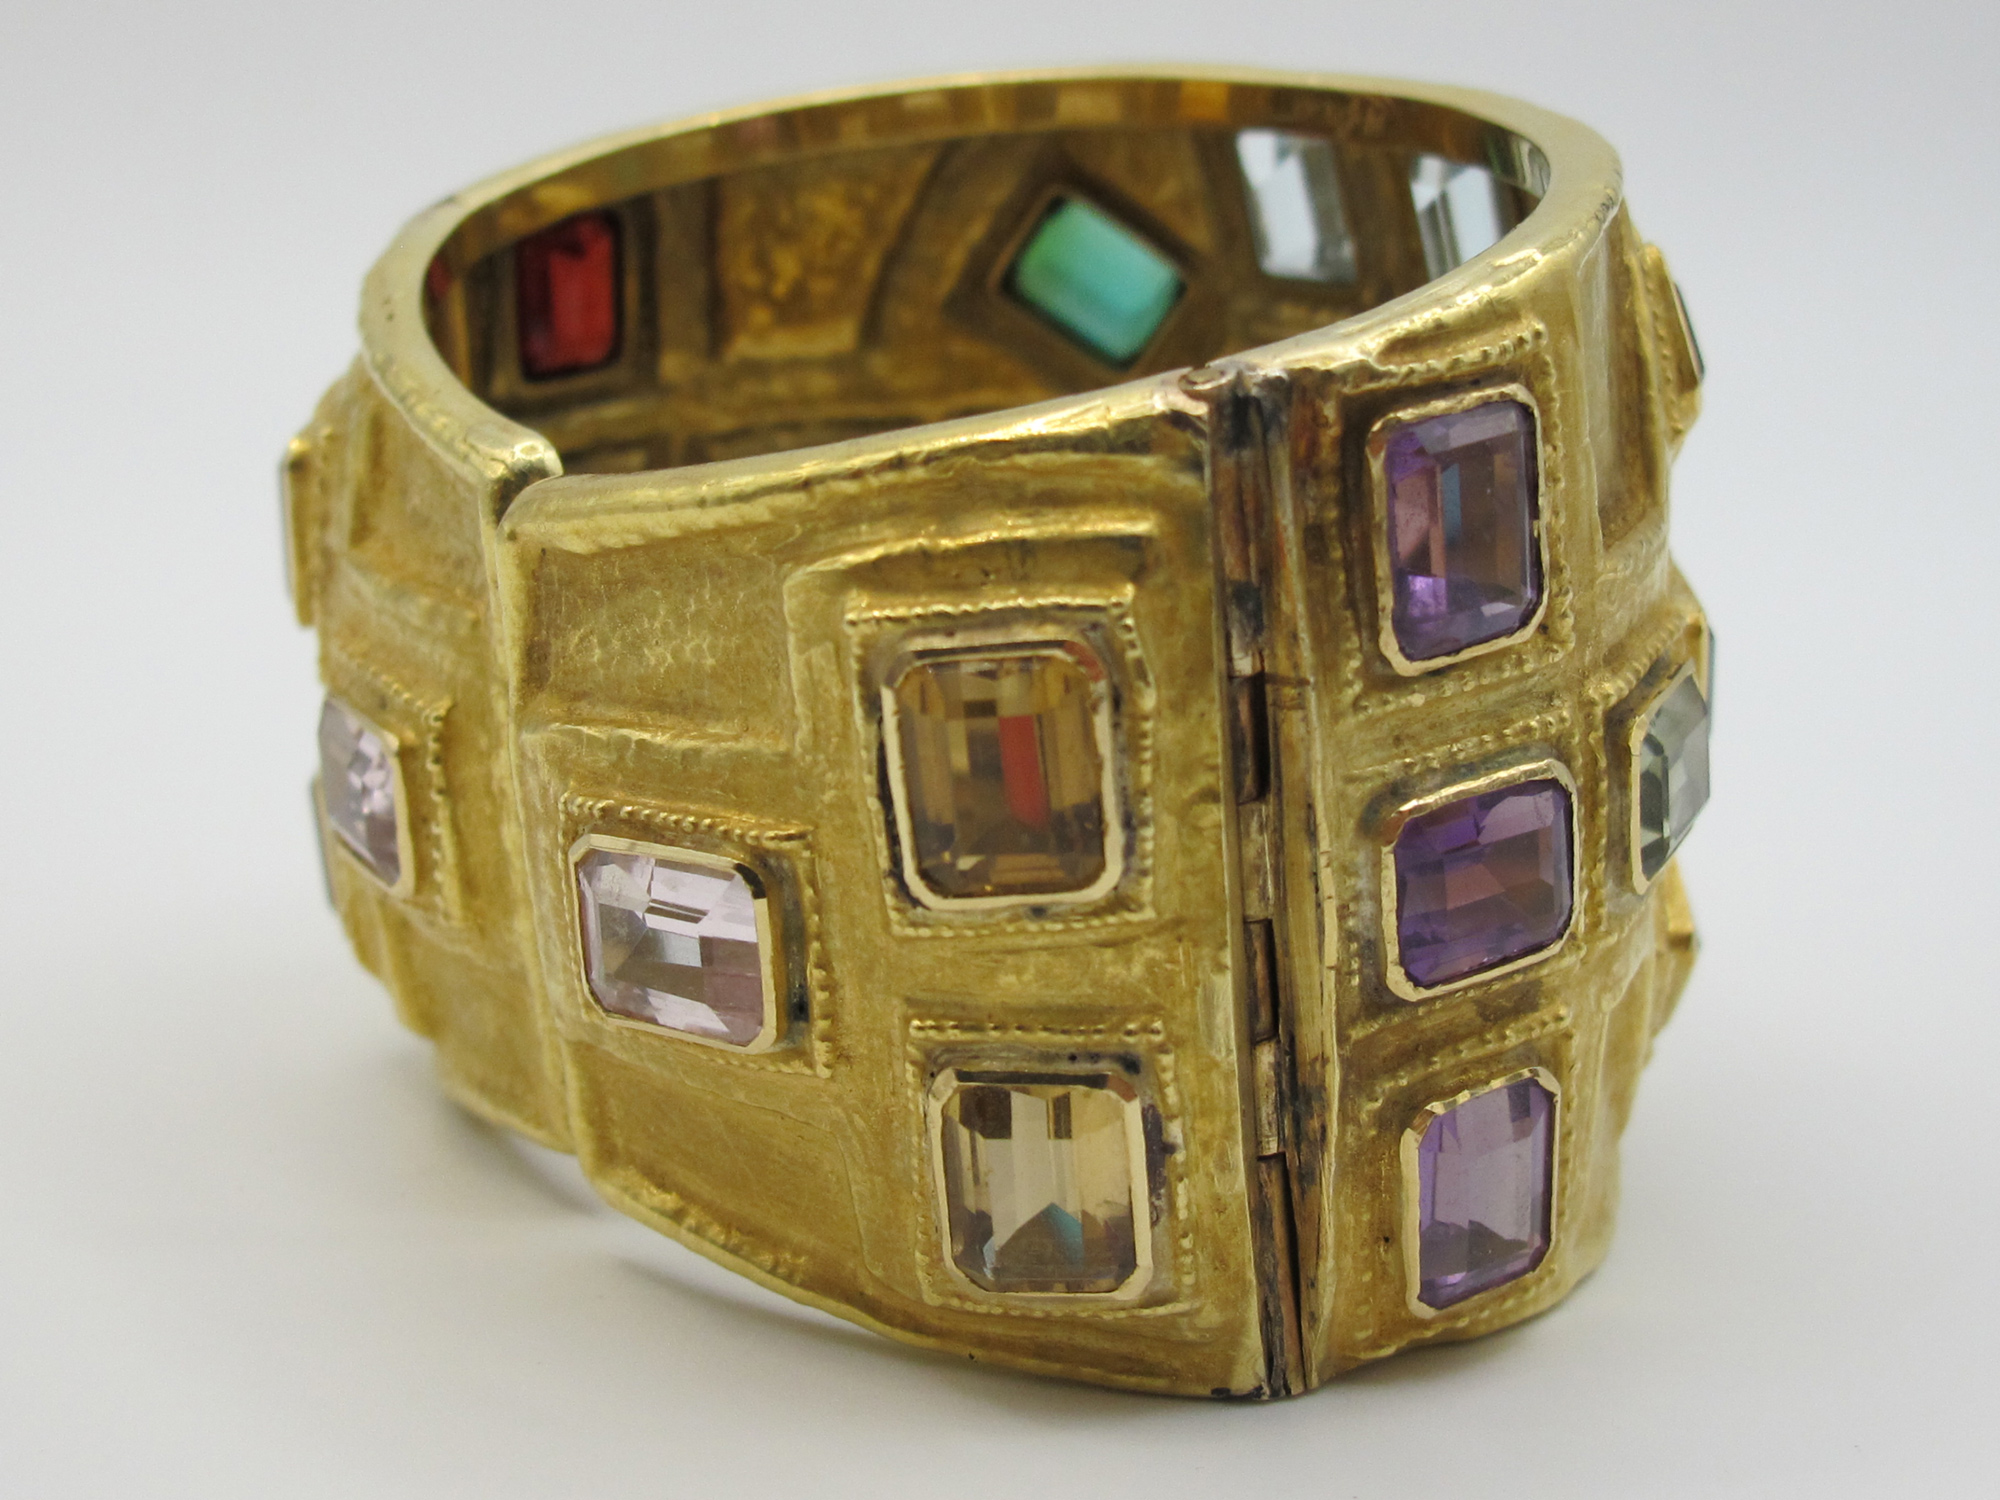 A gold and coloured gemstones bangle